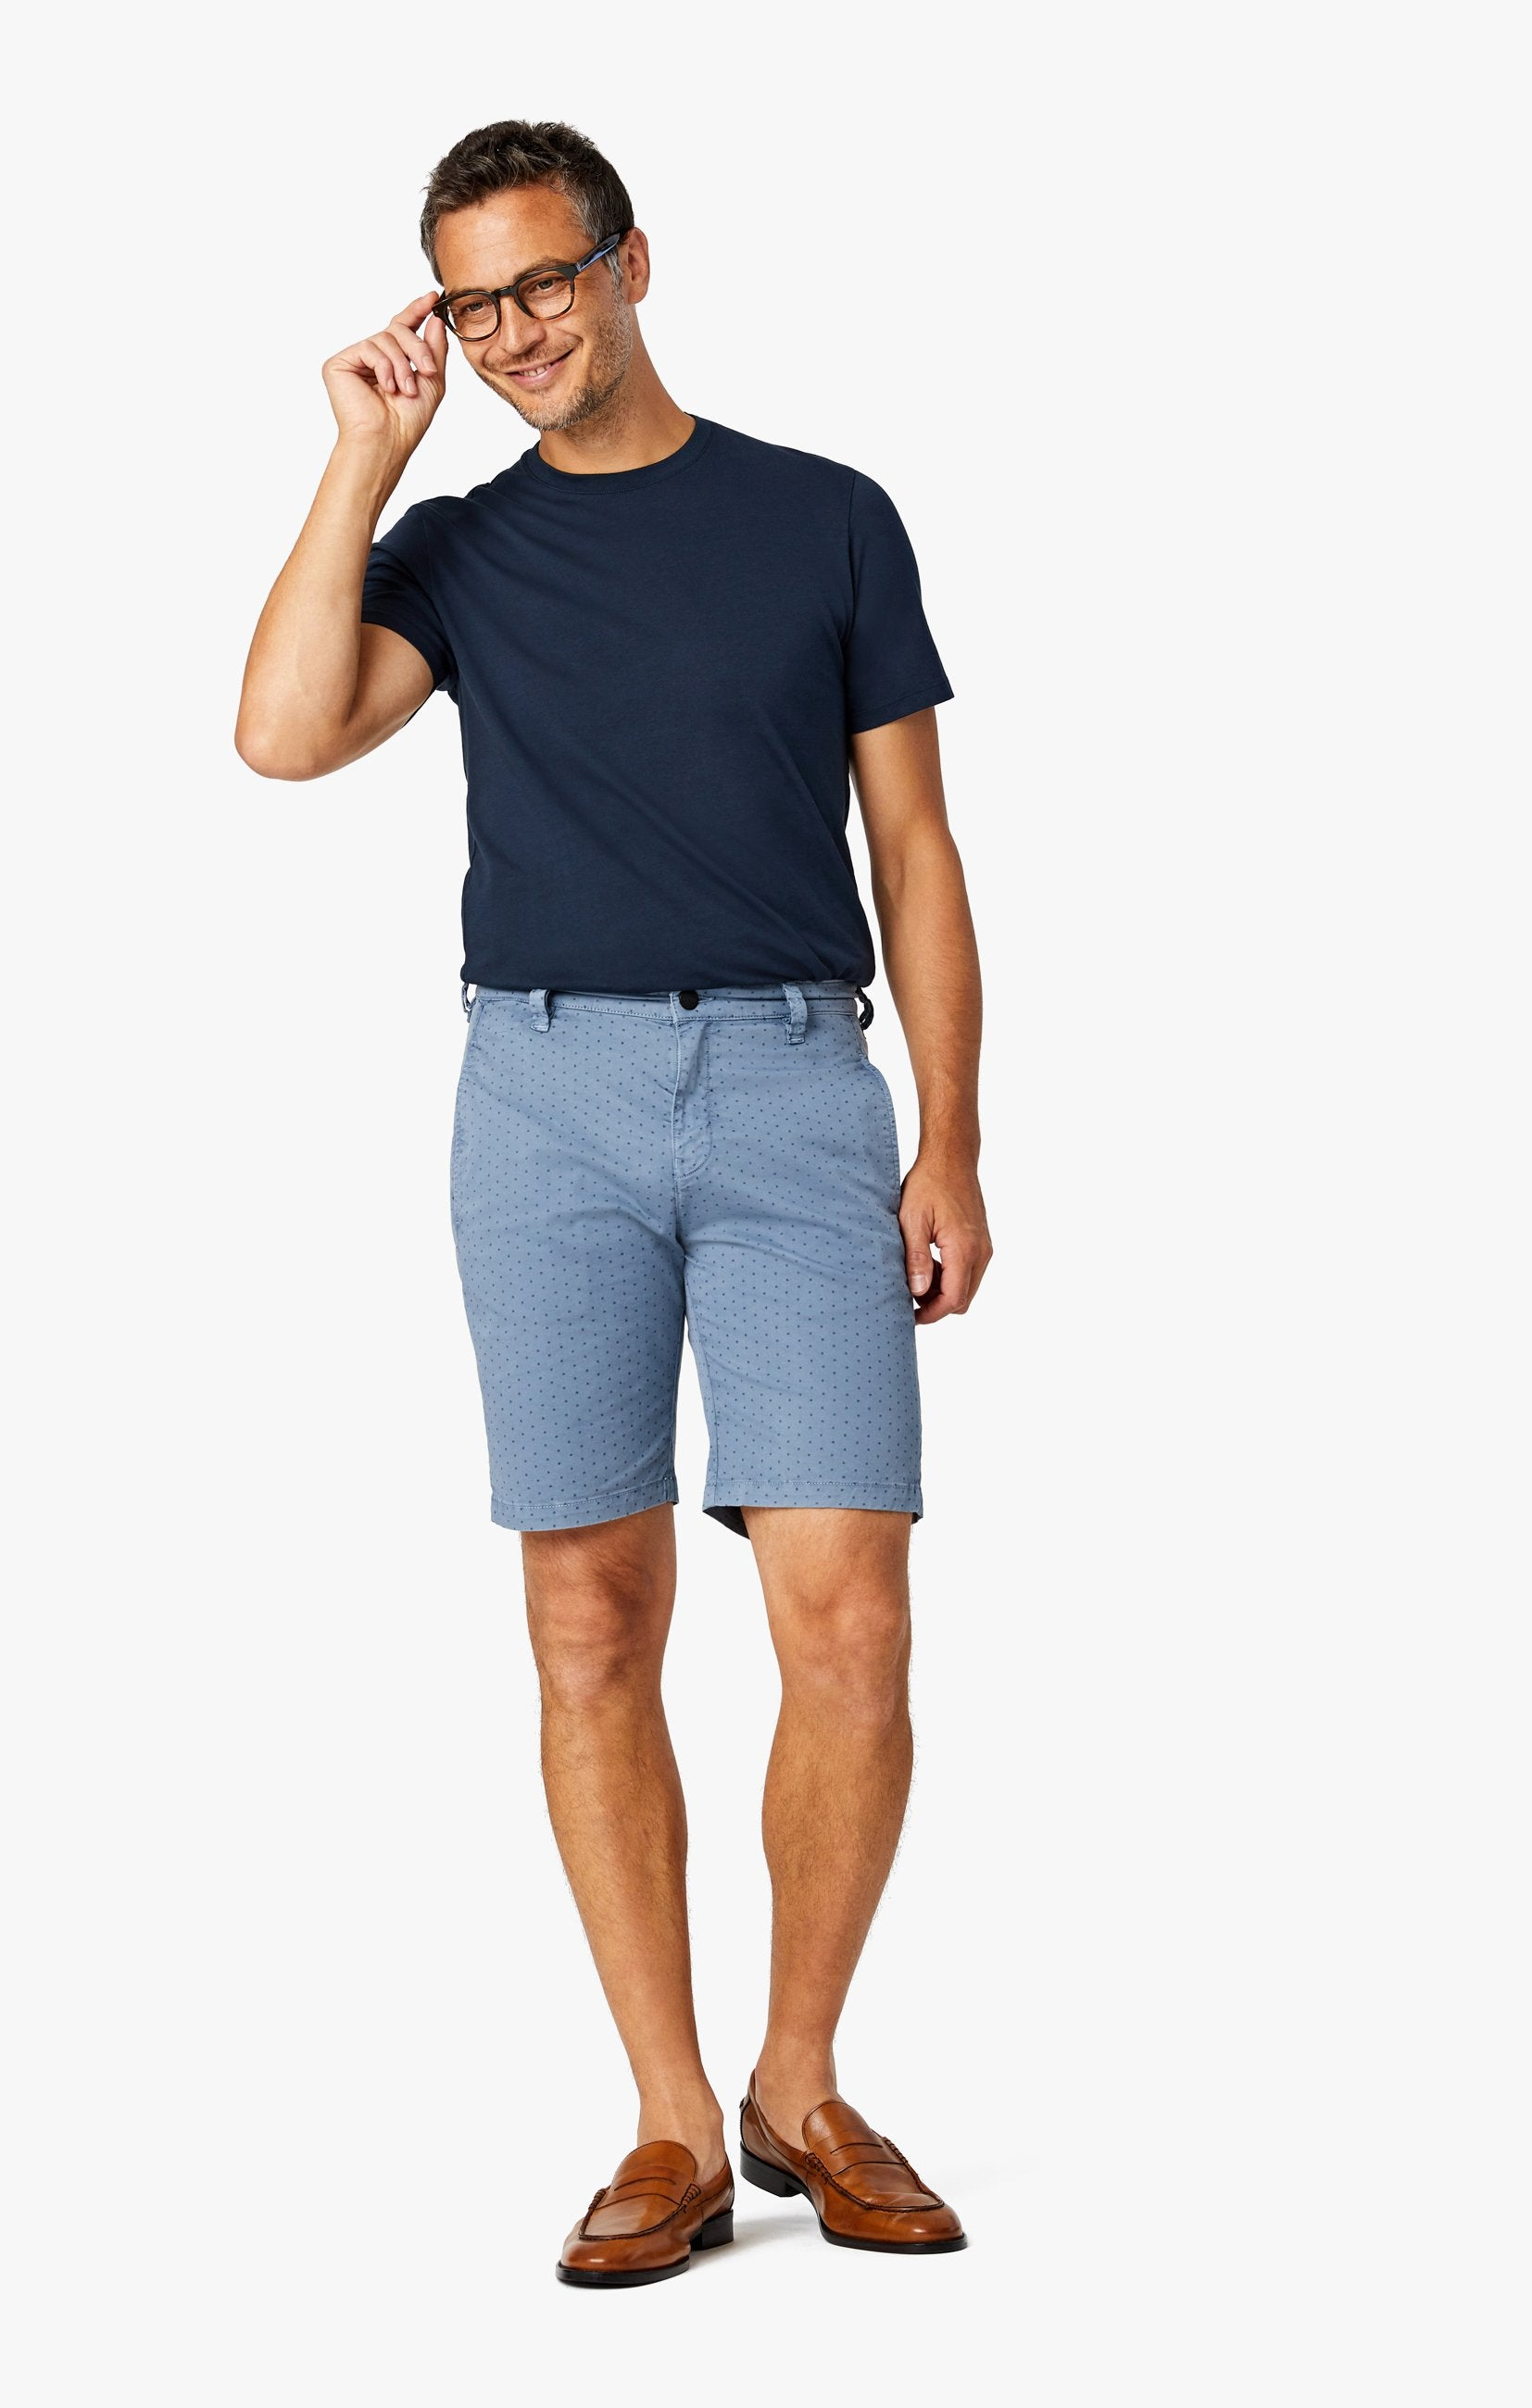 Arizona Slim Shorts in Blue Fancy Image 1